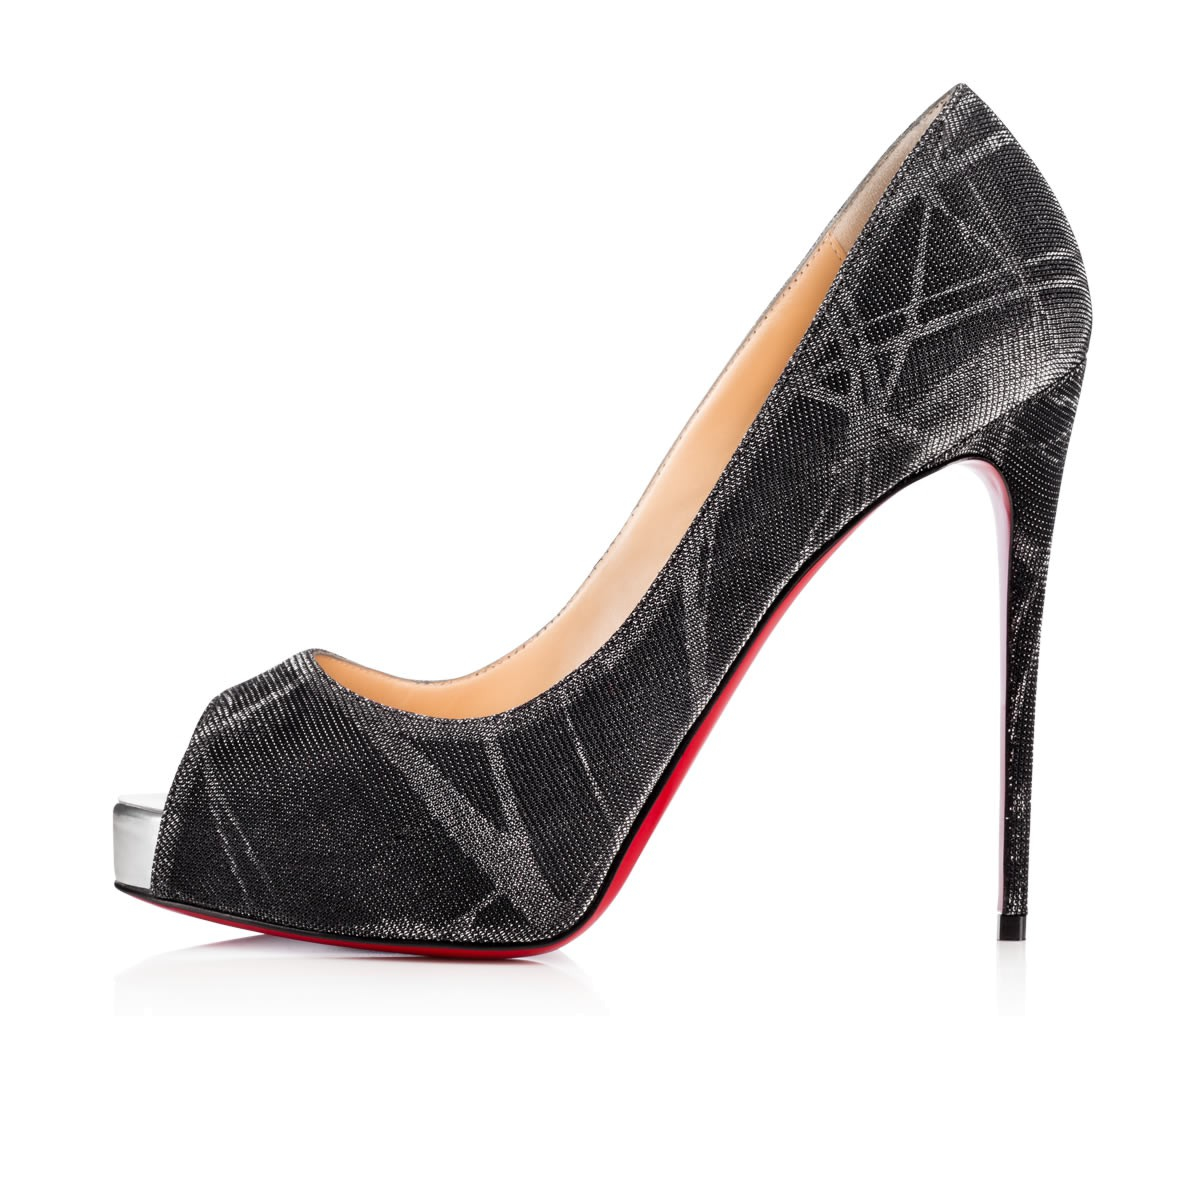 christian louboutin mens trainers - Christian louboutin New Very Prive Tissu Etincelle/ Specchio in ...